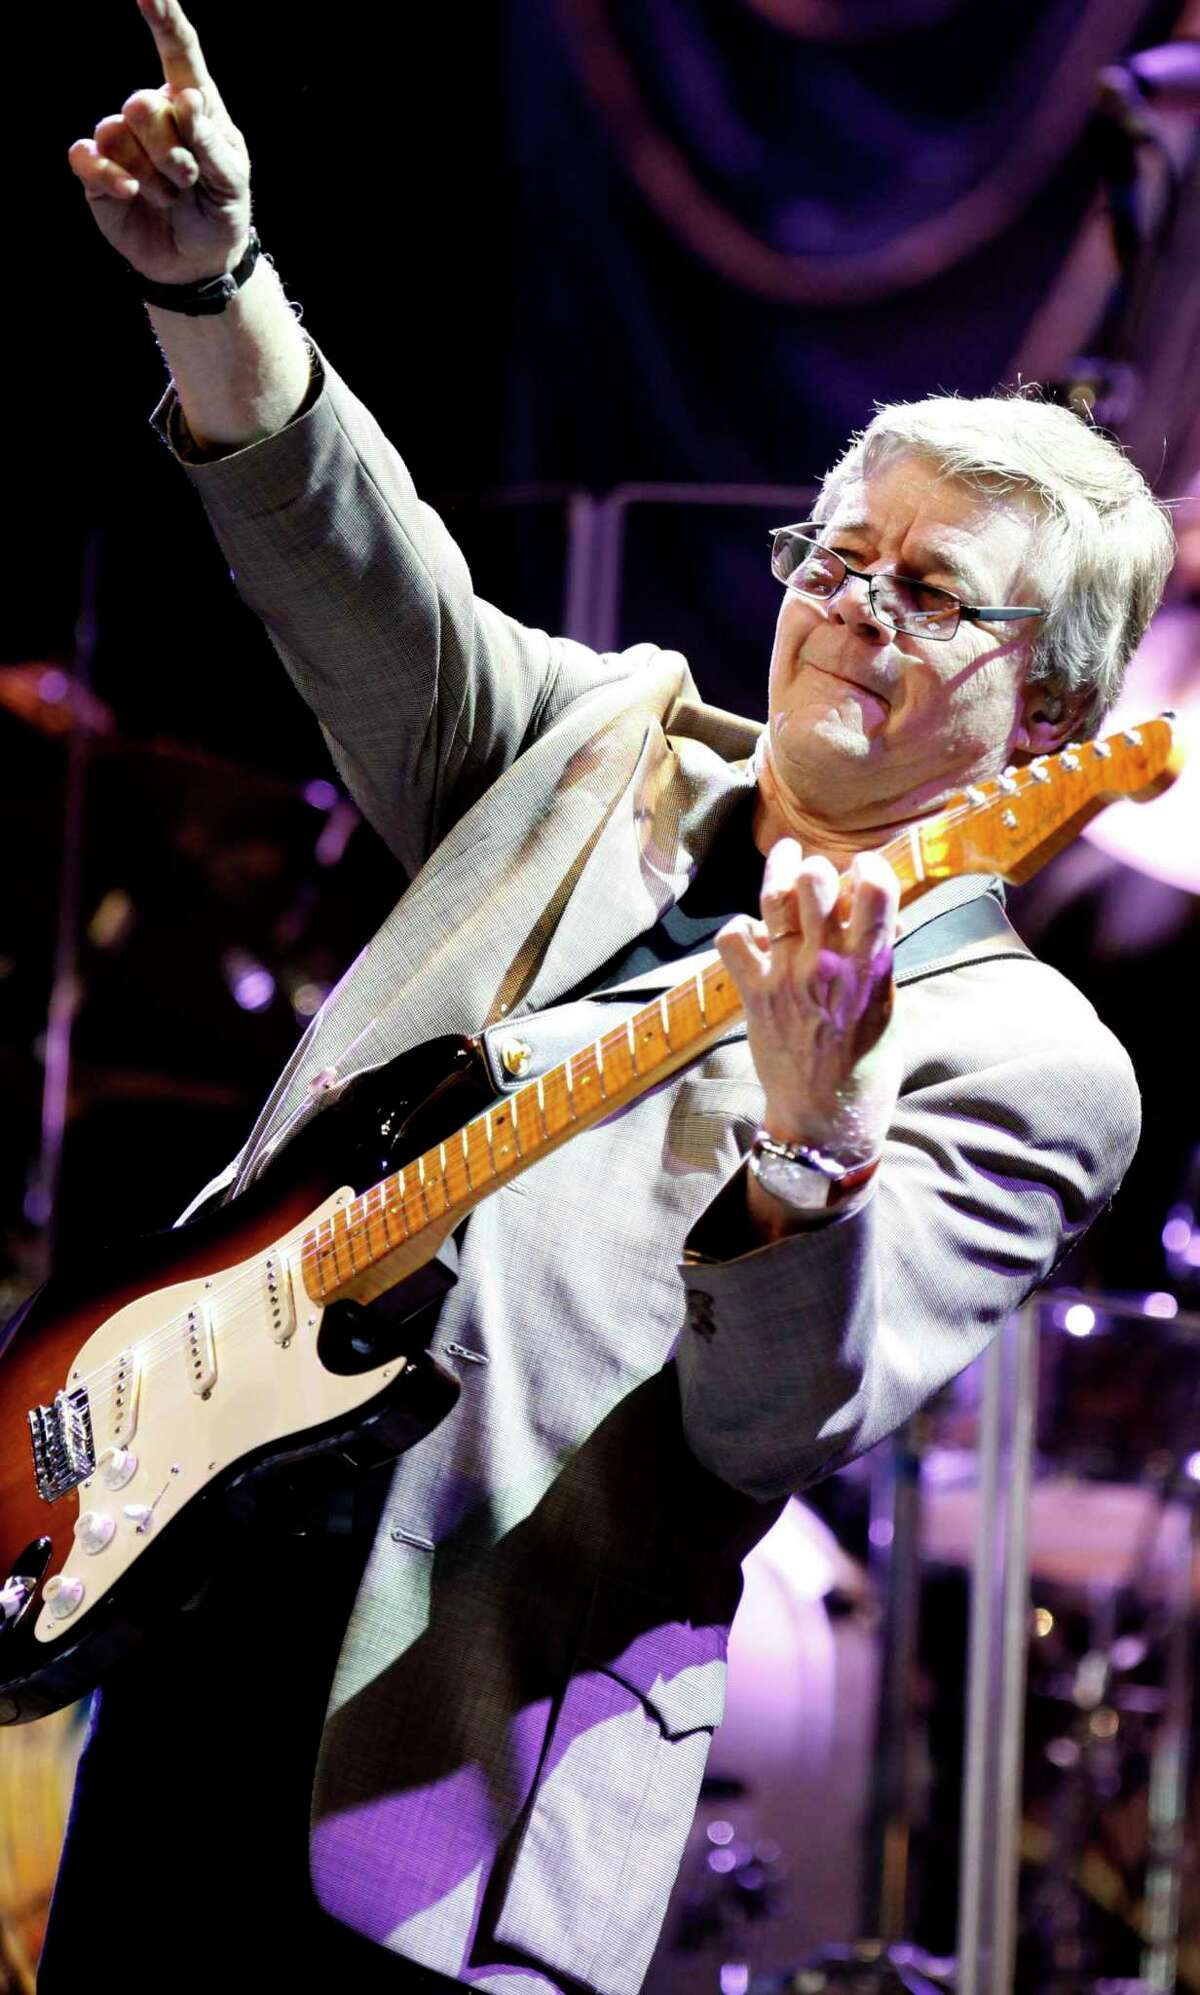 Steve Miller from the Steve Miller Band points to the heavens honoring his friend the late Bay Area harmonic legend Norton during a tribute concert for buffalo that fetured Bonnie Raitt and the Doobie Bros along with a dozen gust appearance at the Fox Theater in downtown Oakland Saturday night Jan 23, 2010. By Lance Iversen/The Chronicle